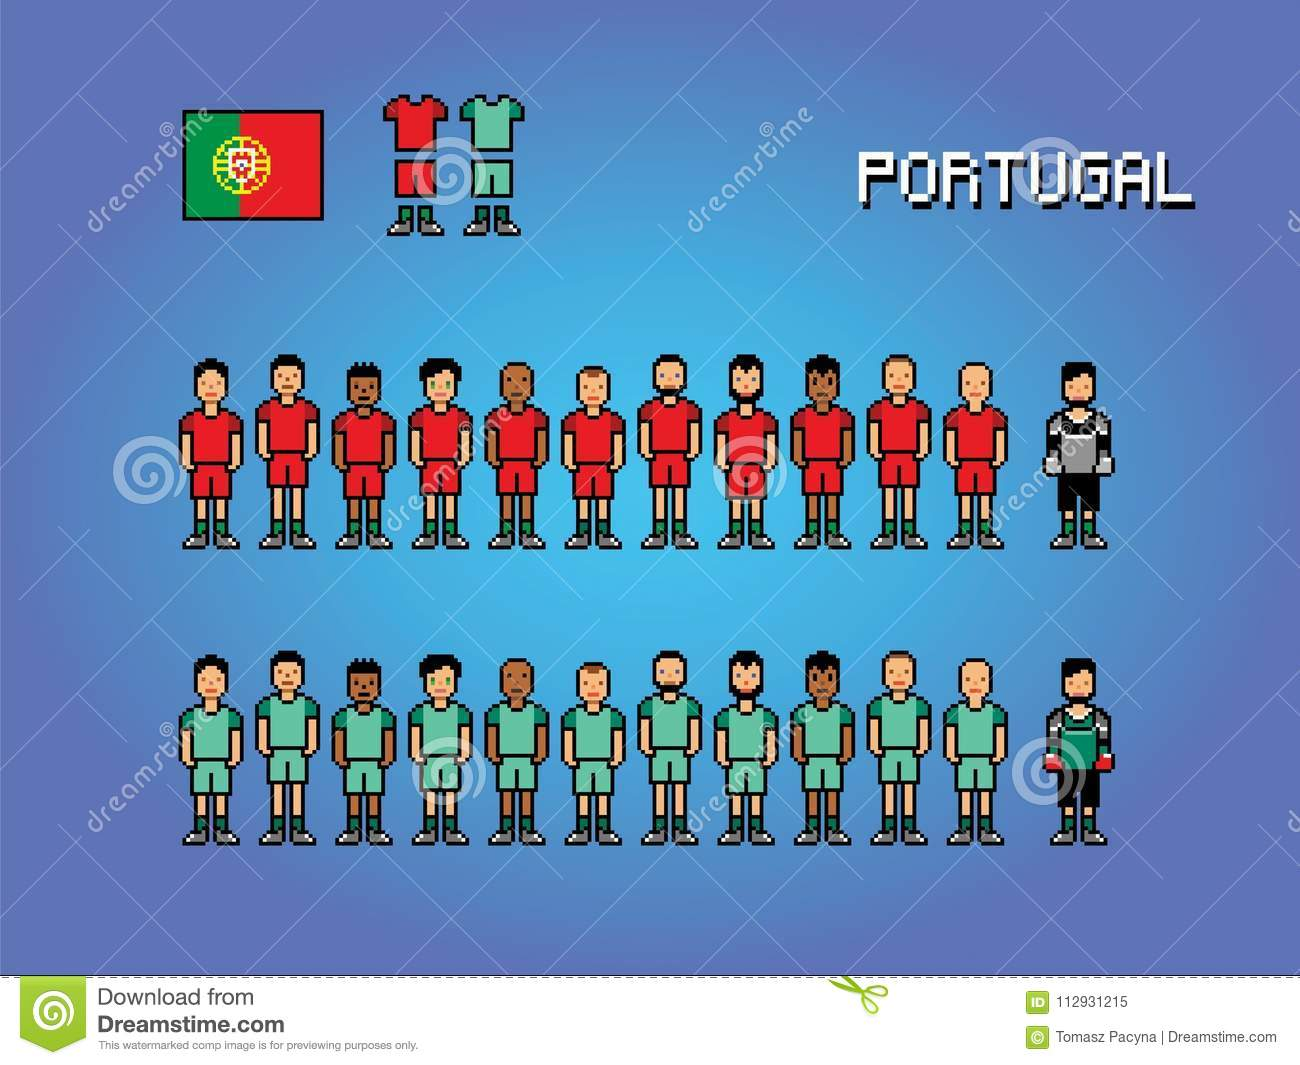 Portugal Football Team Player Uniform Pixel Art Game